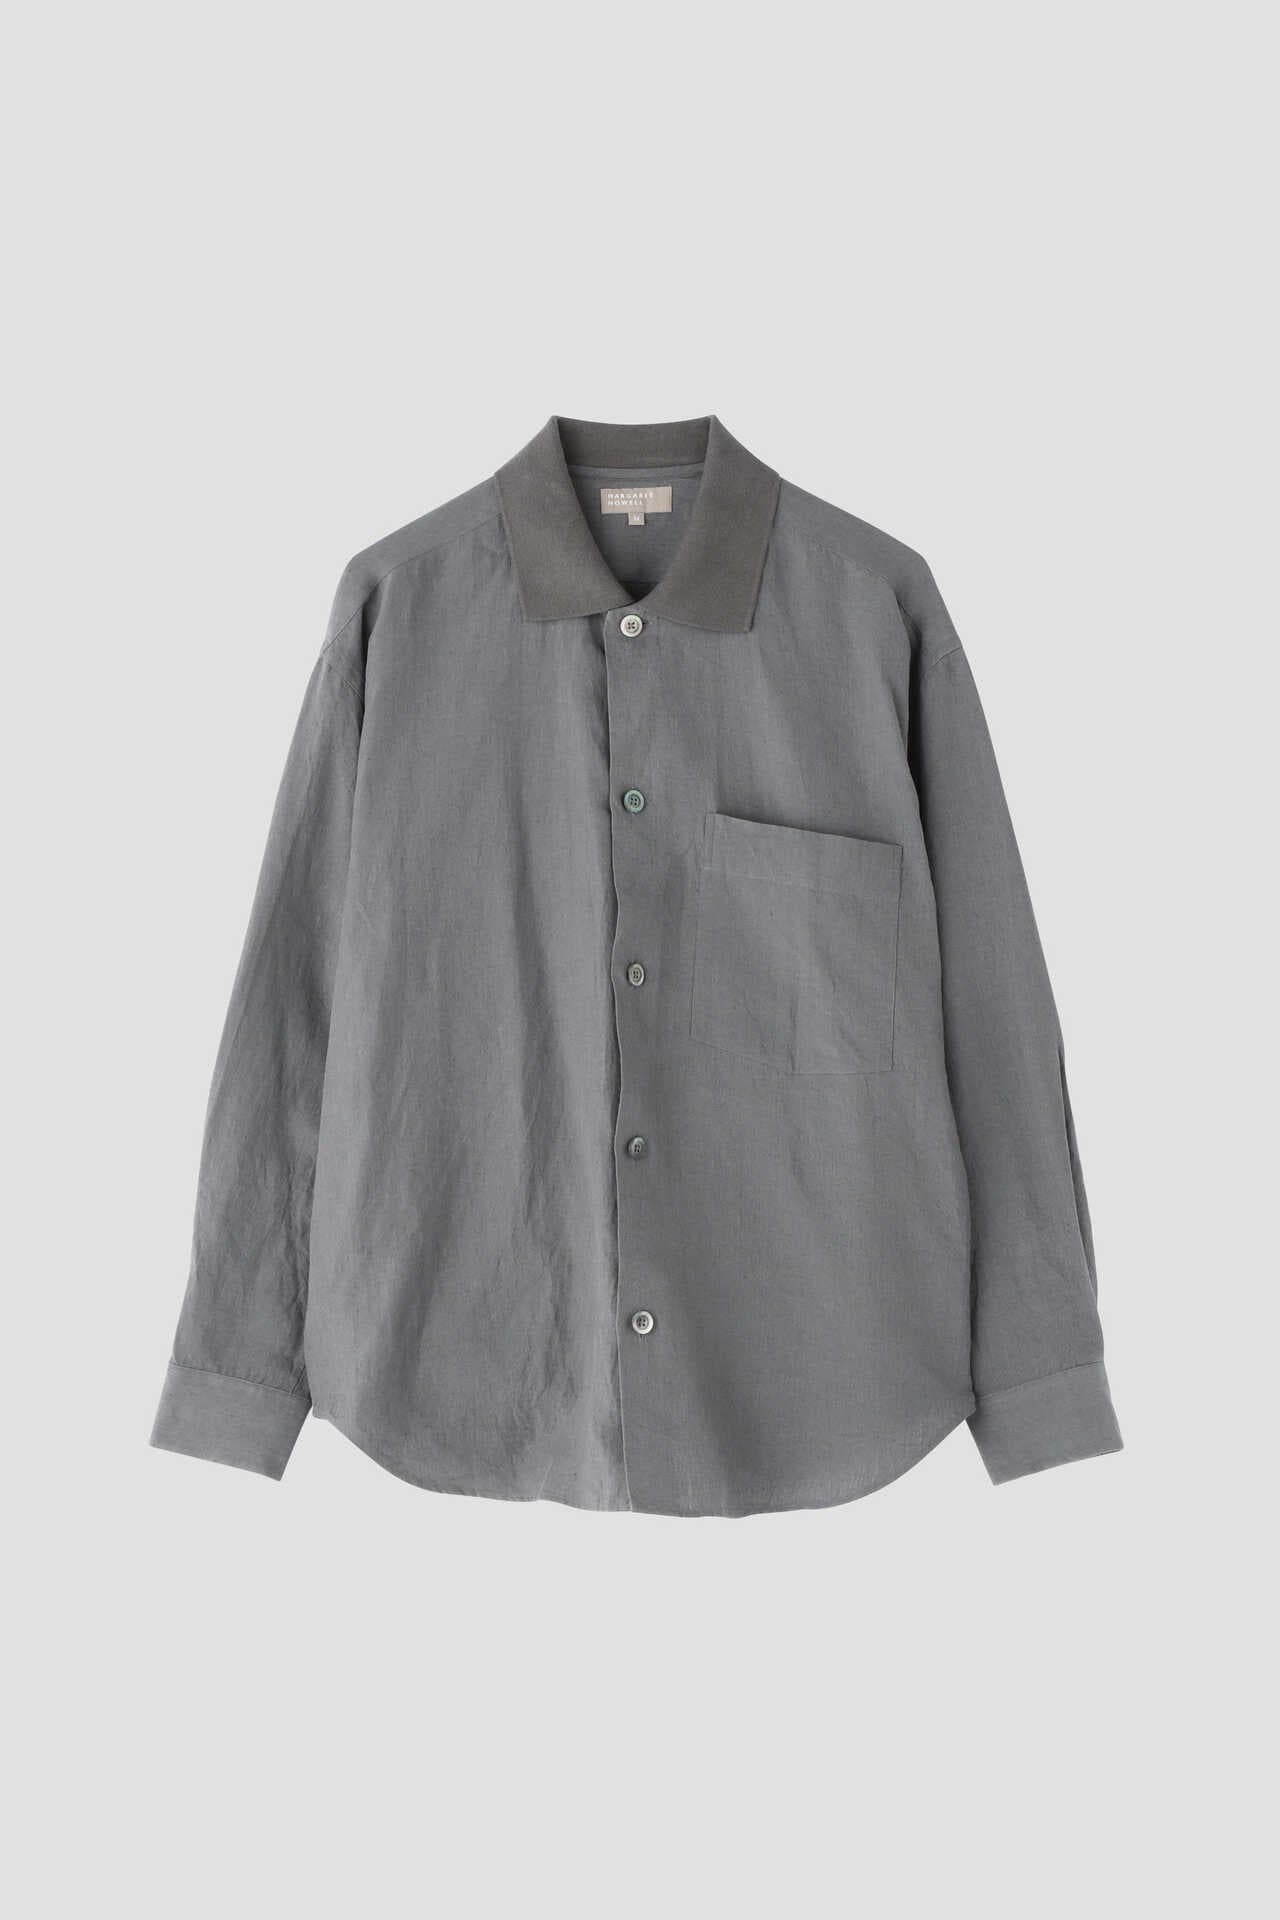 HIGHDENSE SHIRTING LINEN6